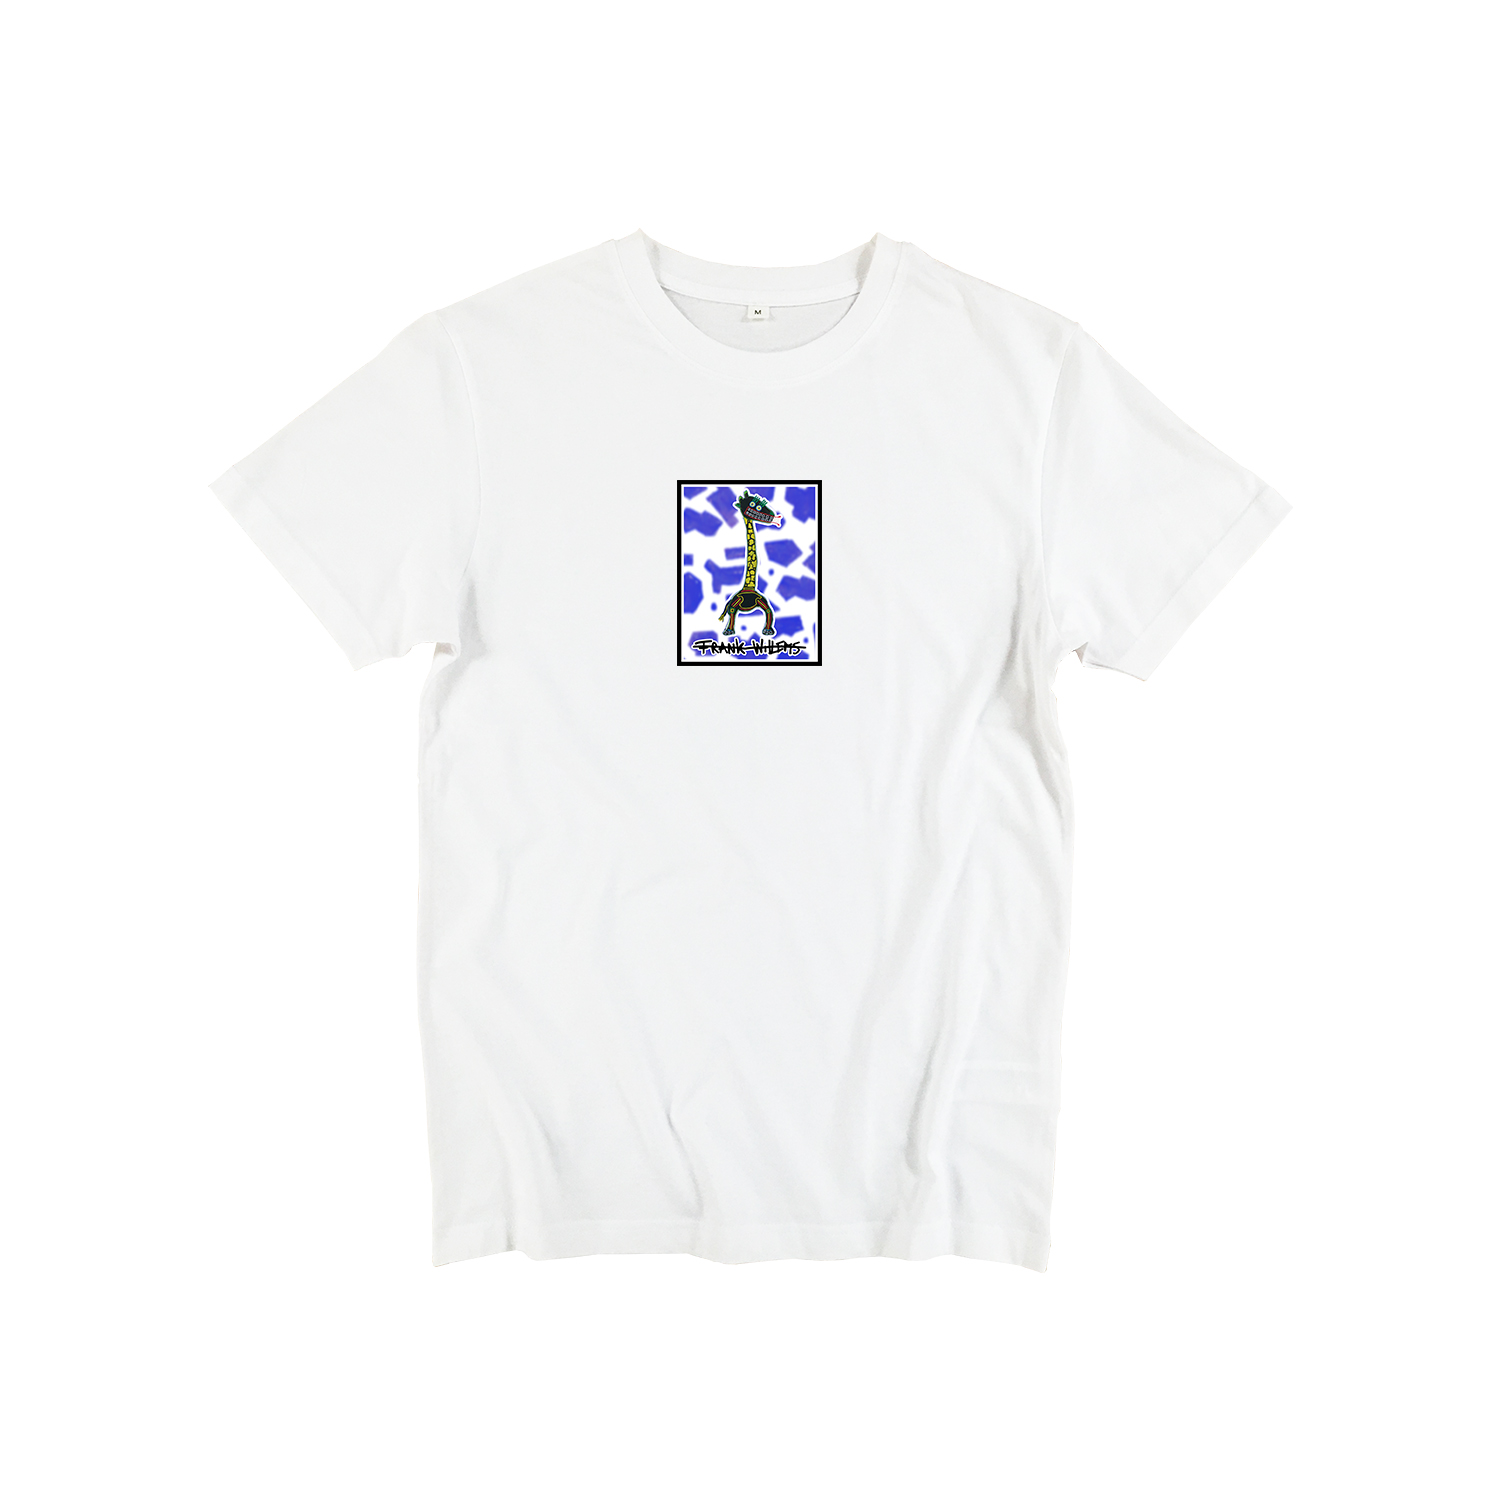 T-shirt white - CRICK IN NECK - Frank Willems